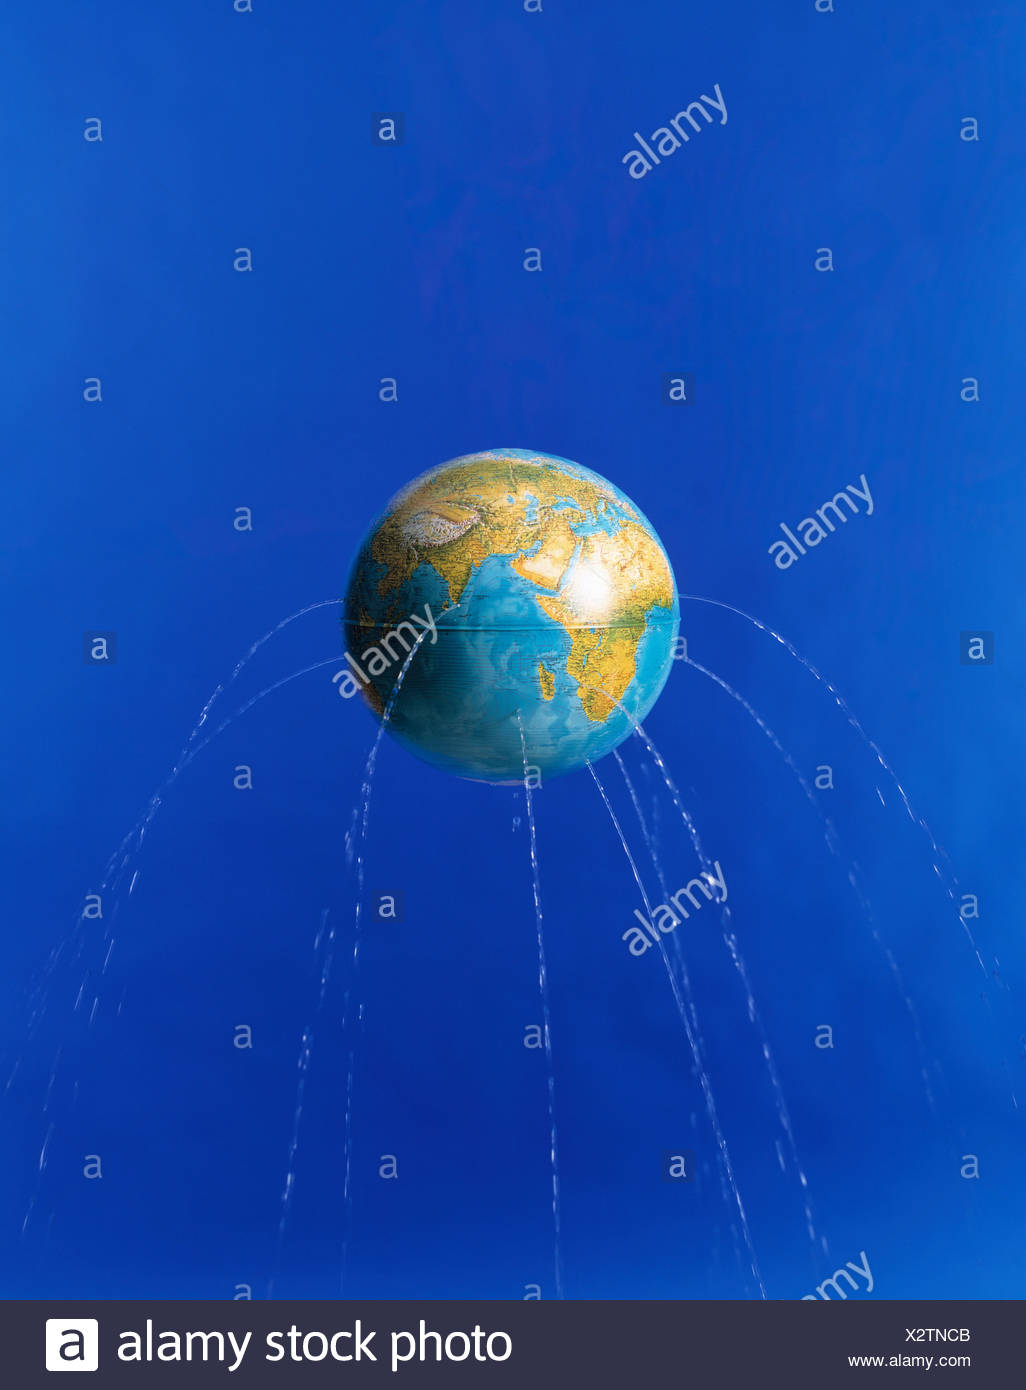 Planet earth with water leaking from it - Stock Image